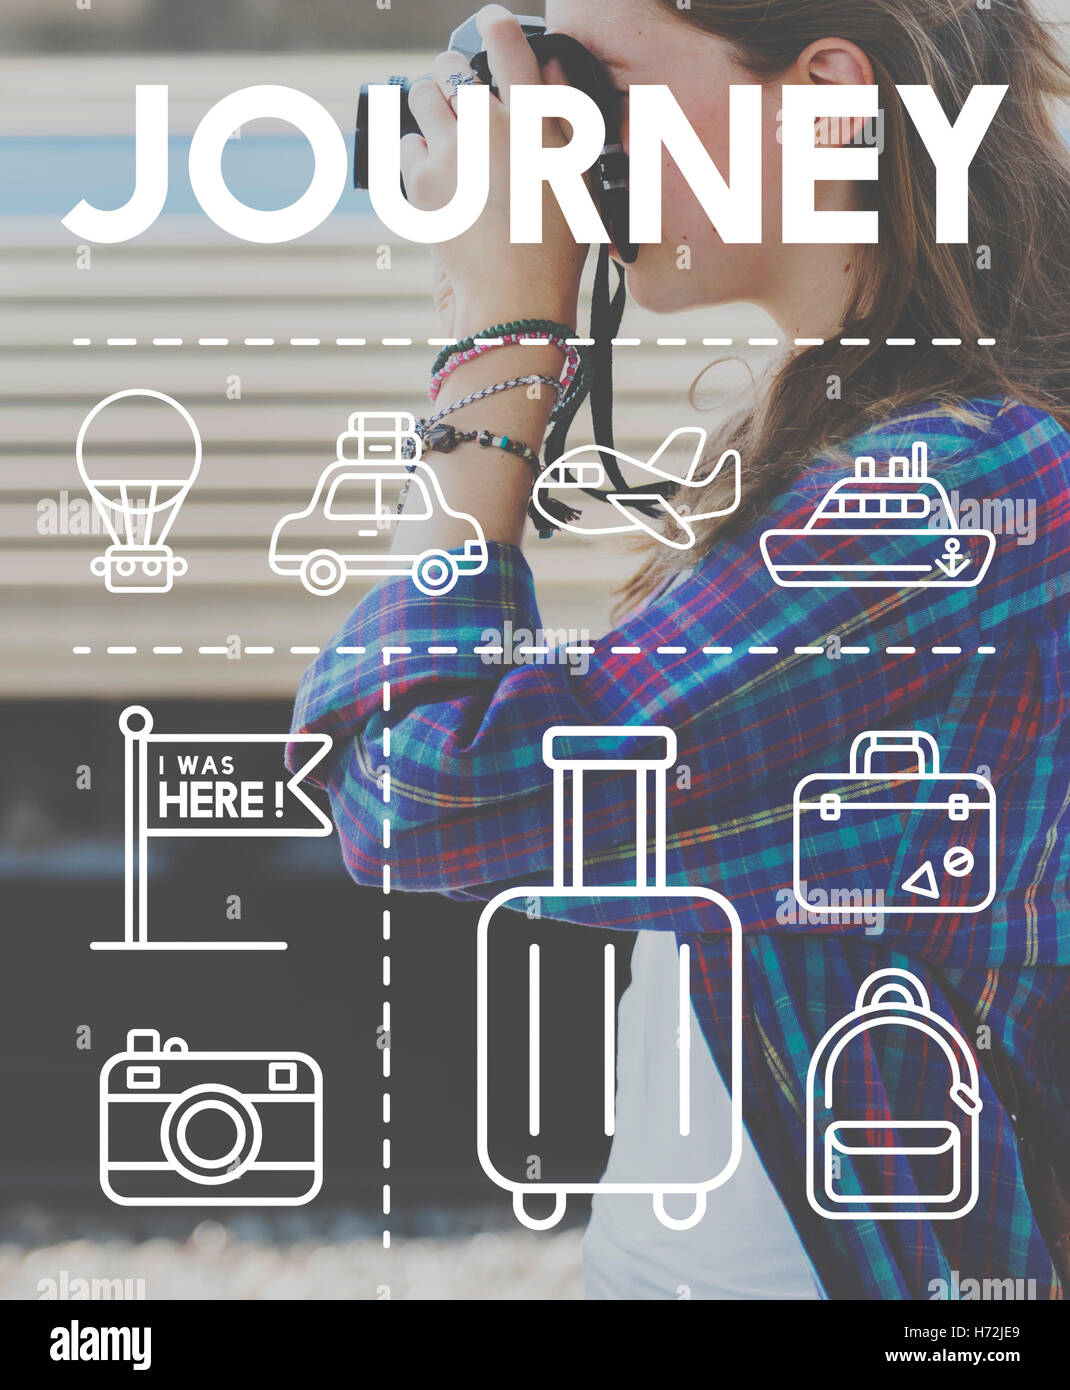 Location Mapping Journey Navigation Concept - Stock Image